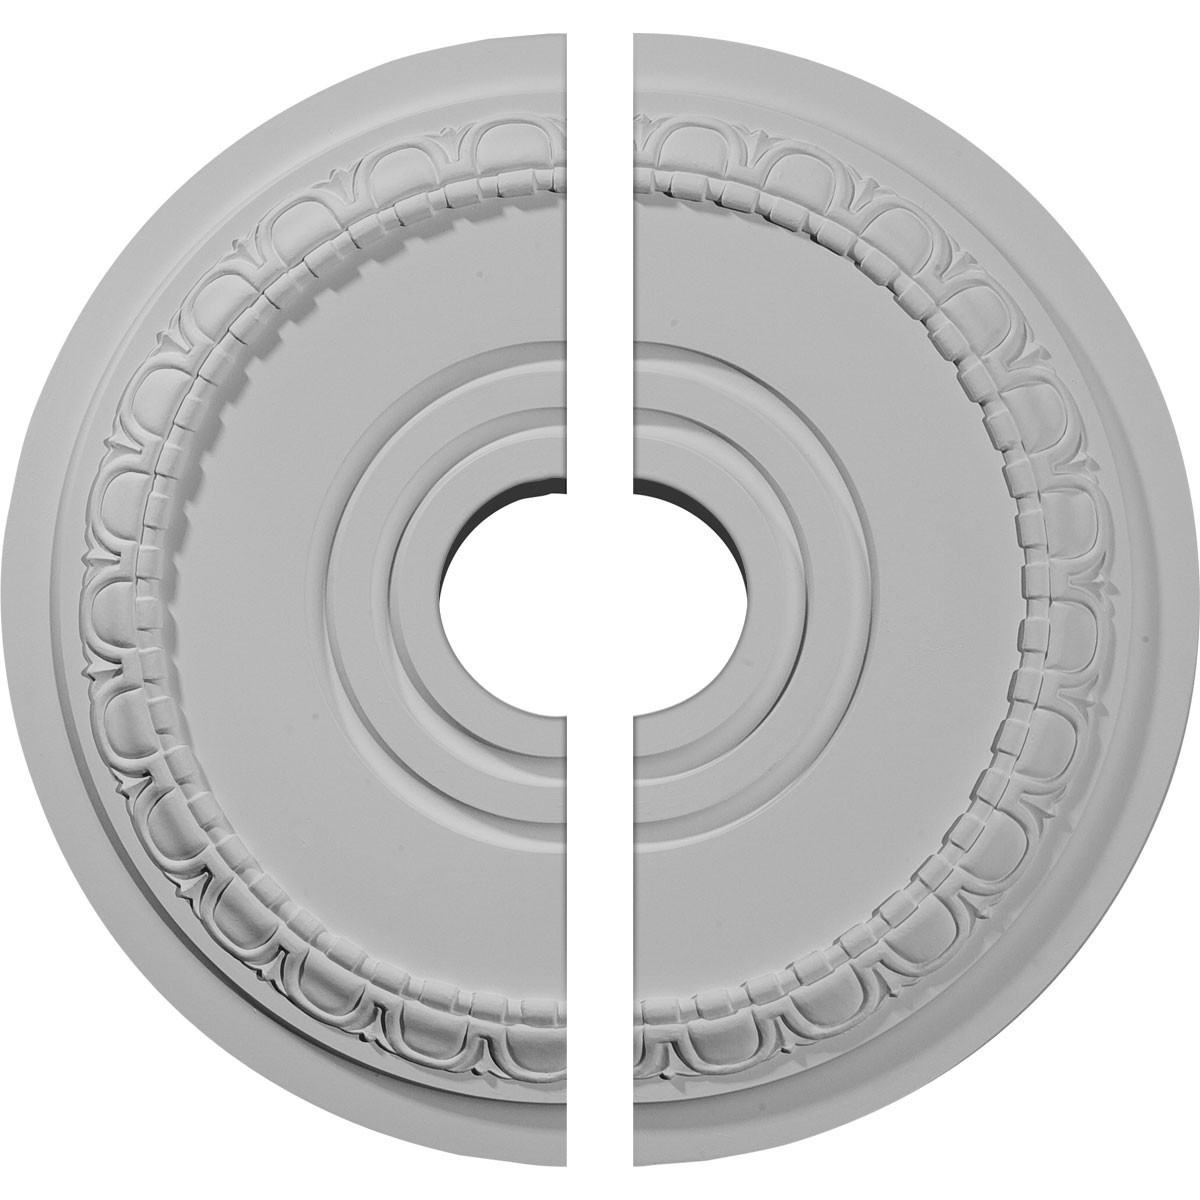 "EM-CM17MU2 - 17 1/2""OD x 3 5/8""ID x 1""P Munich Ceiling Medallion, Two Piece (Fits Canopies up to 5 5/8"")"